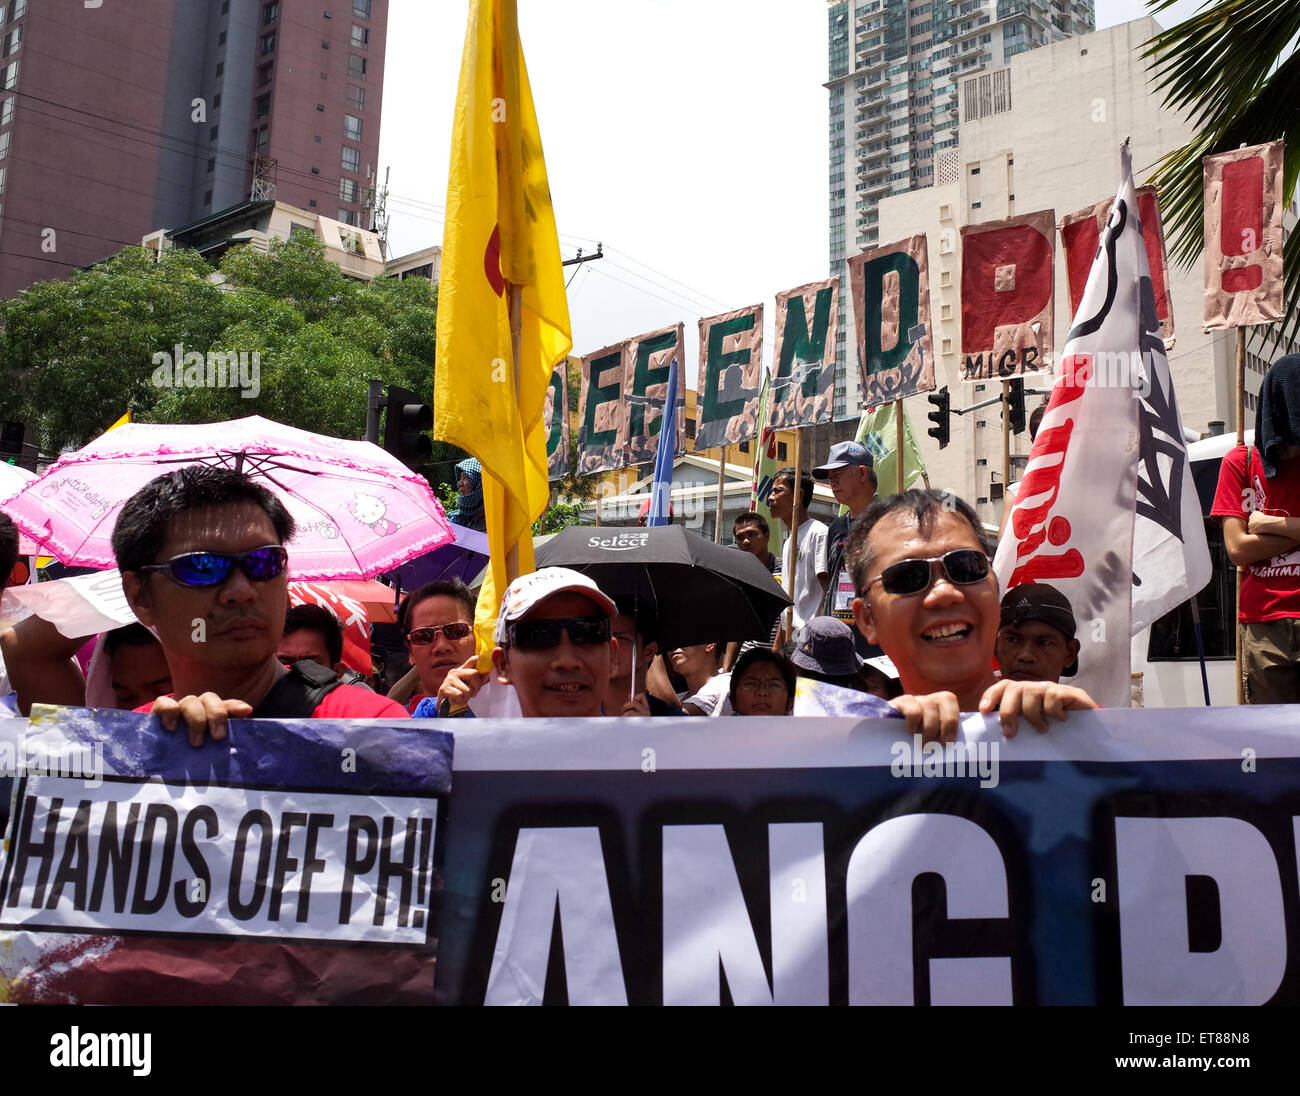 Manila, Philippines. 12th June, 2015. Protesters listen to a speaker during a protest action outside the US Embassy - Stock Image